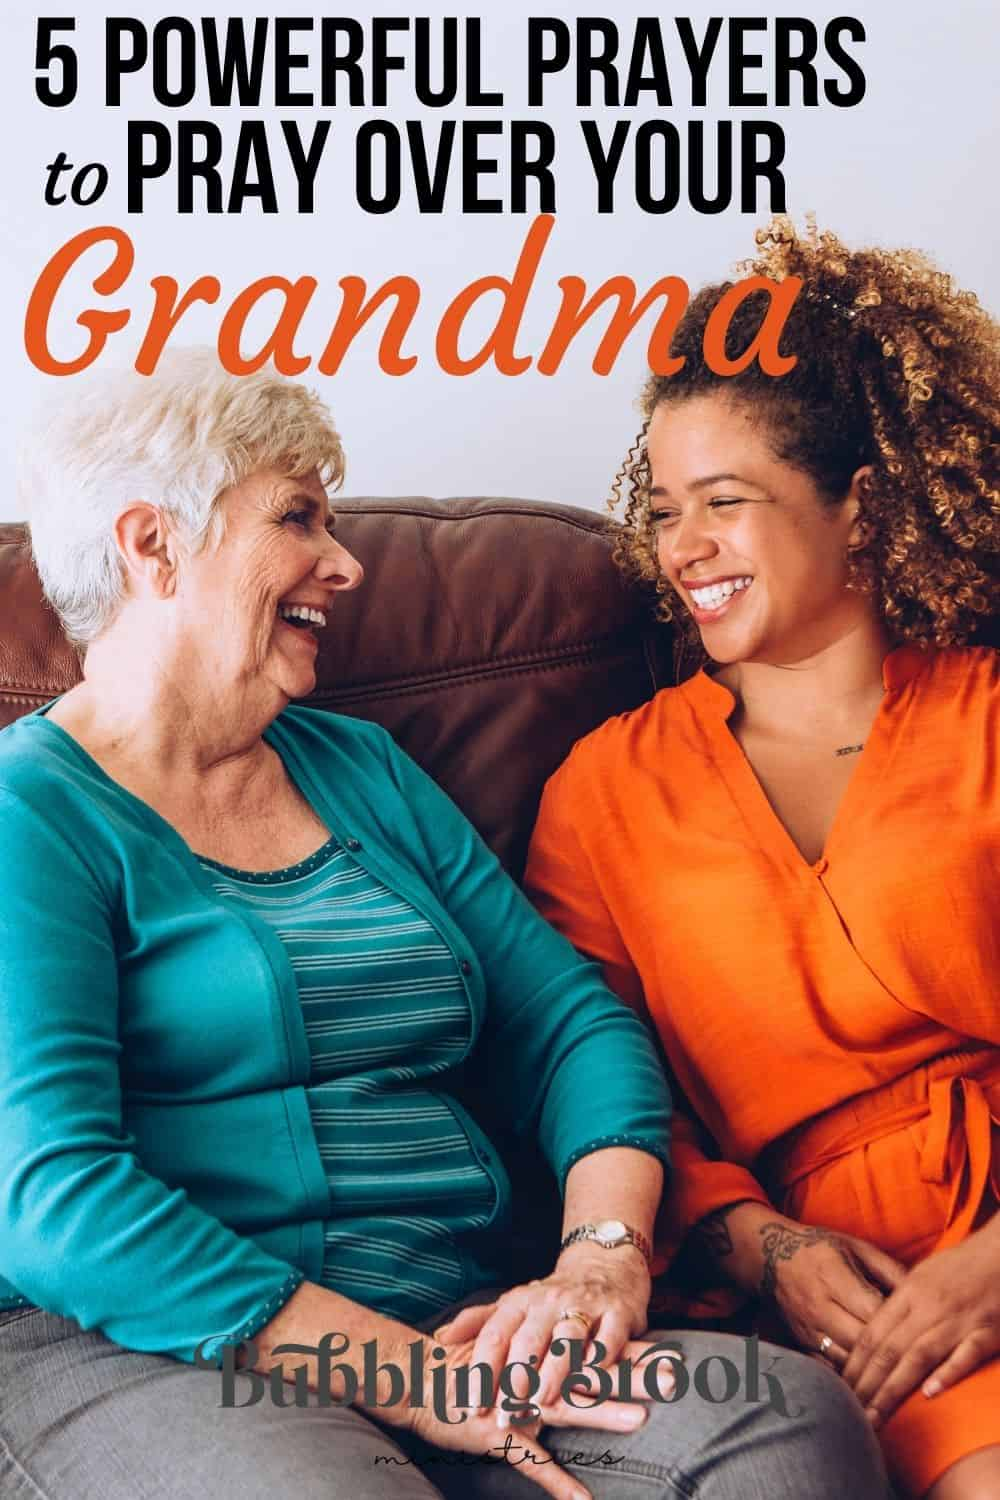 Grandma and granddaughter sitting on couch together